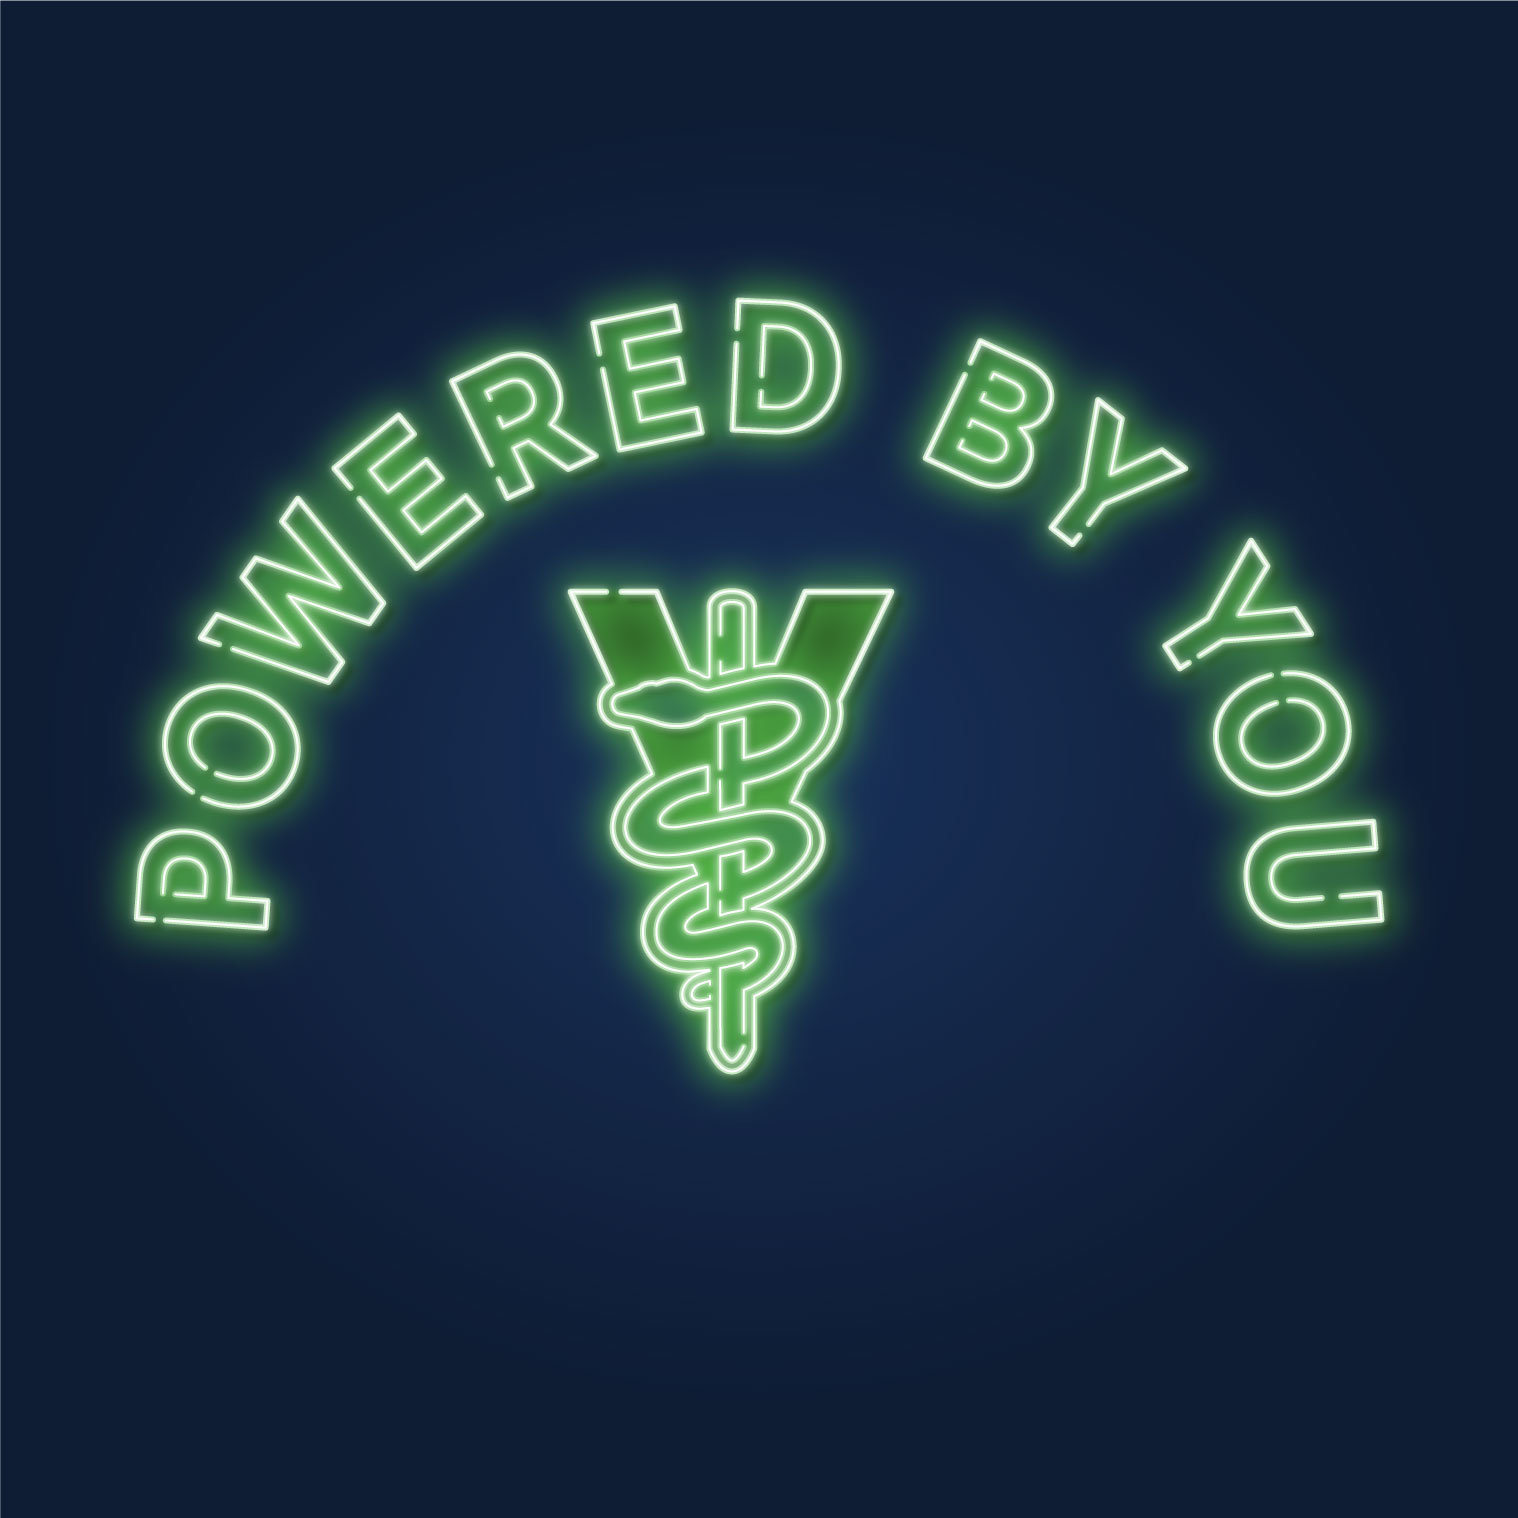 AVMA: Powered by you